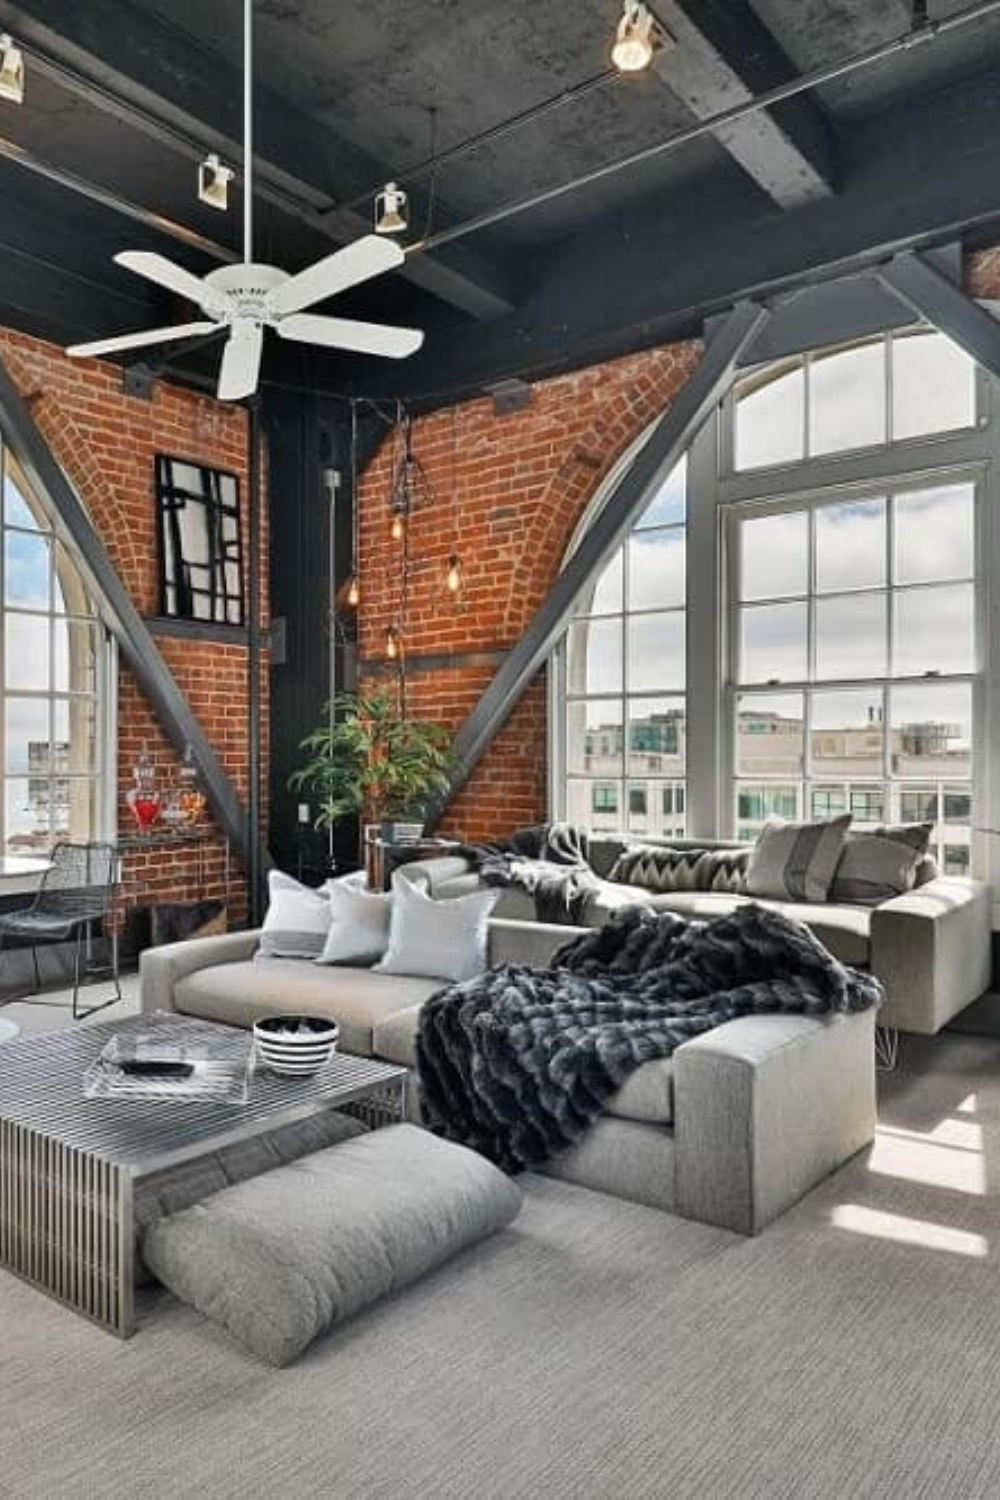 This Living Room Uses An Industrial Style Aesthetic From The Dark